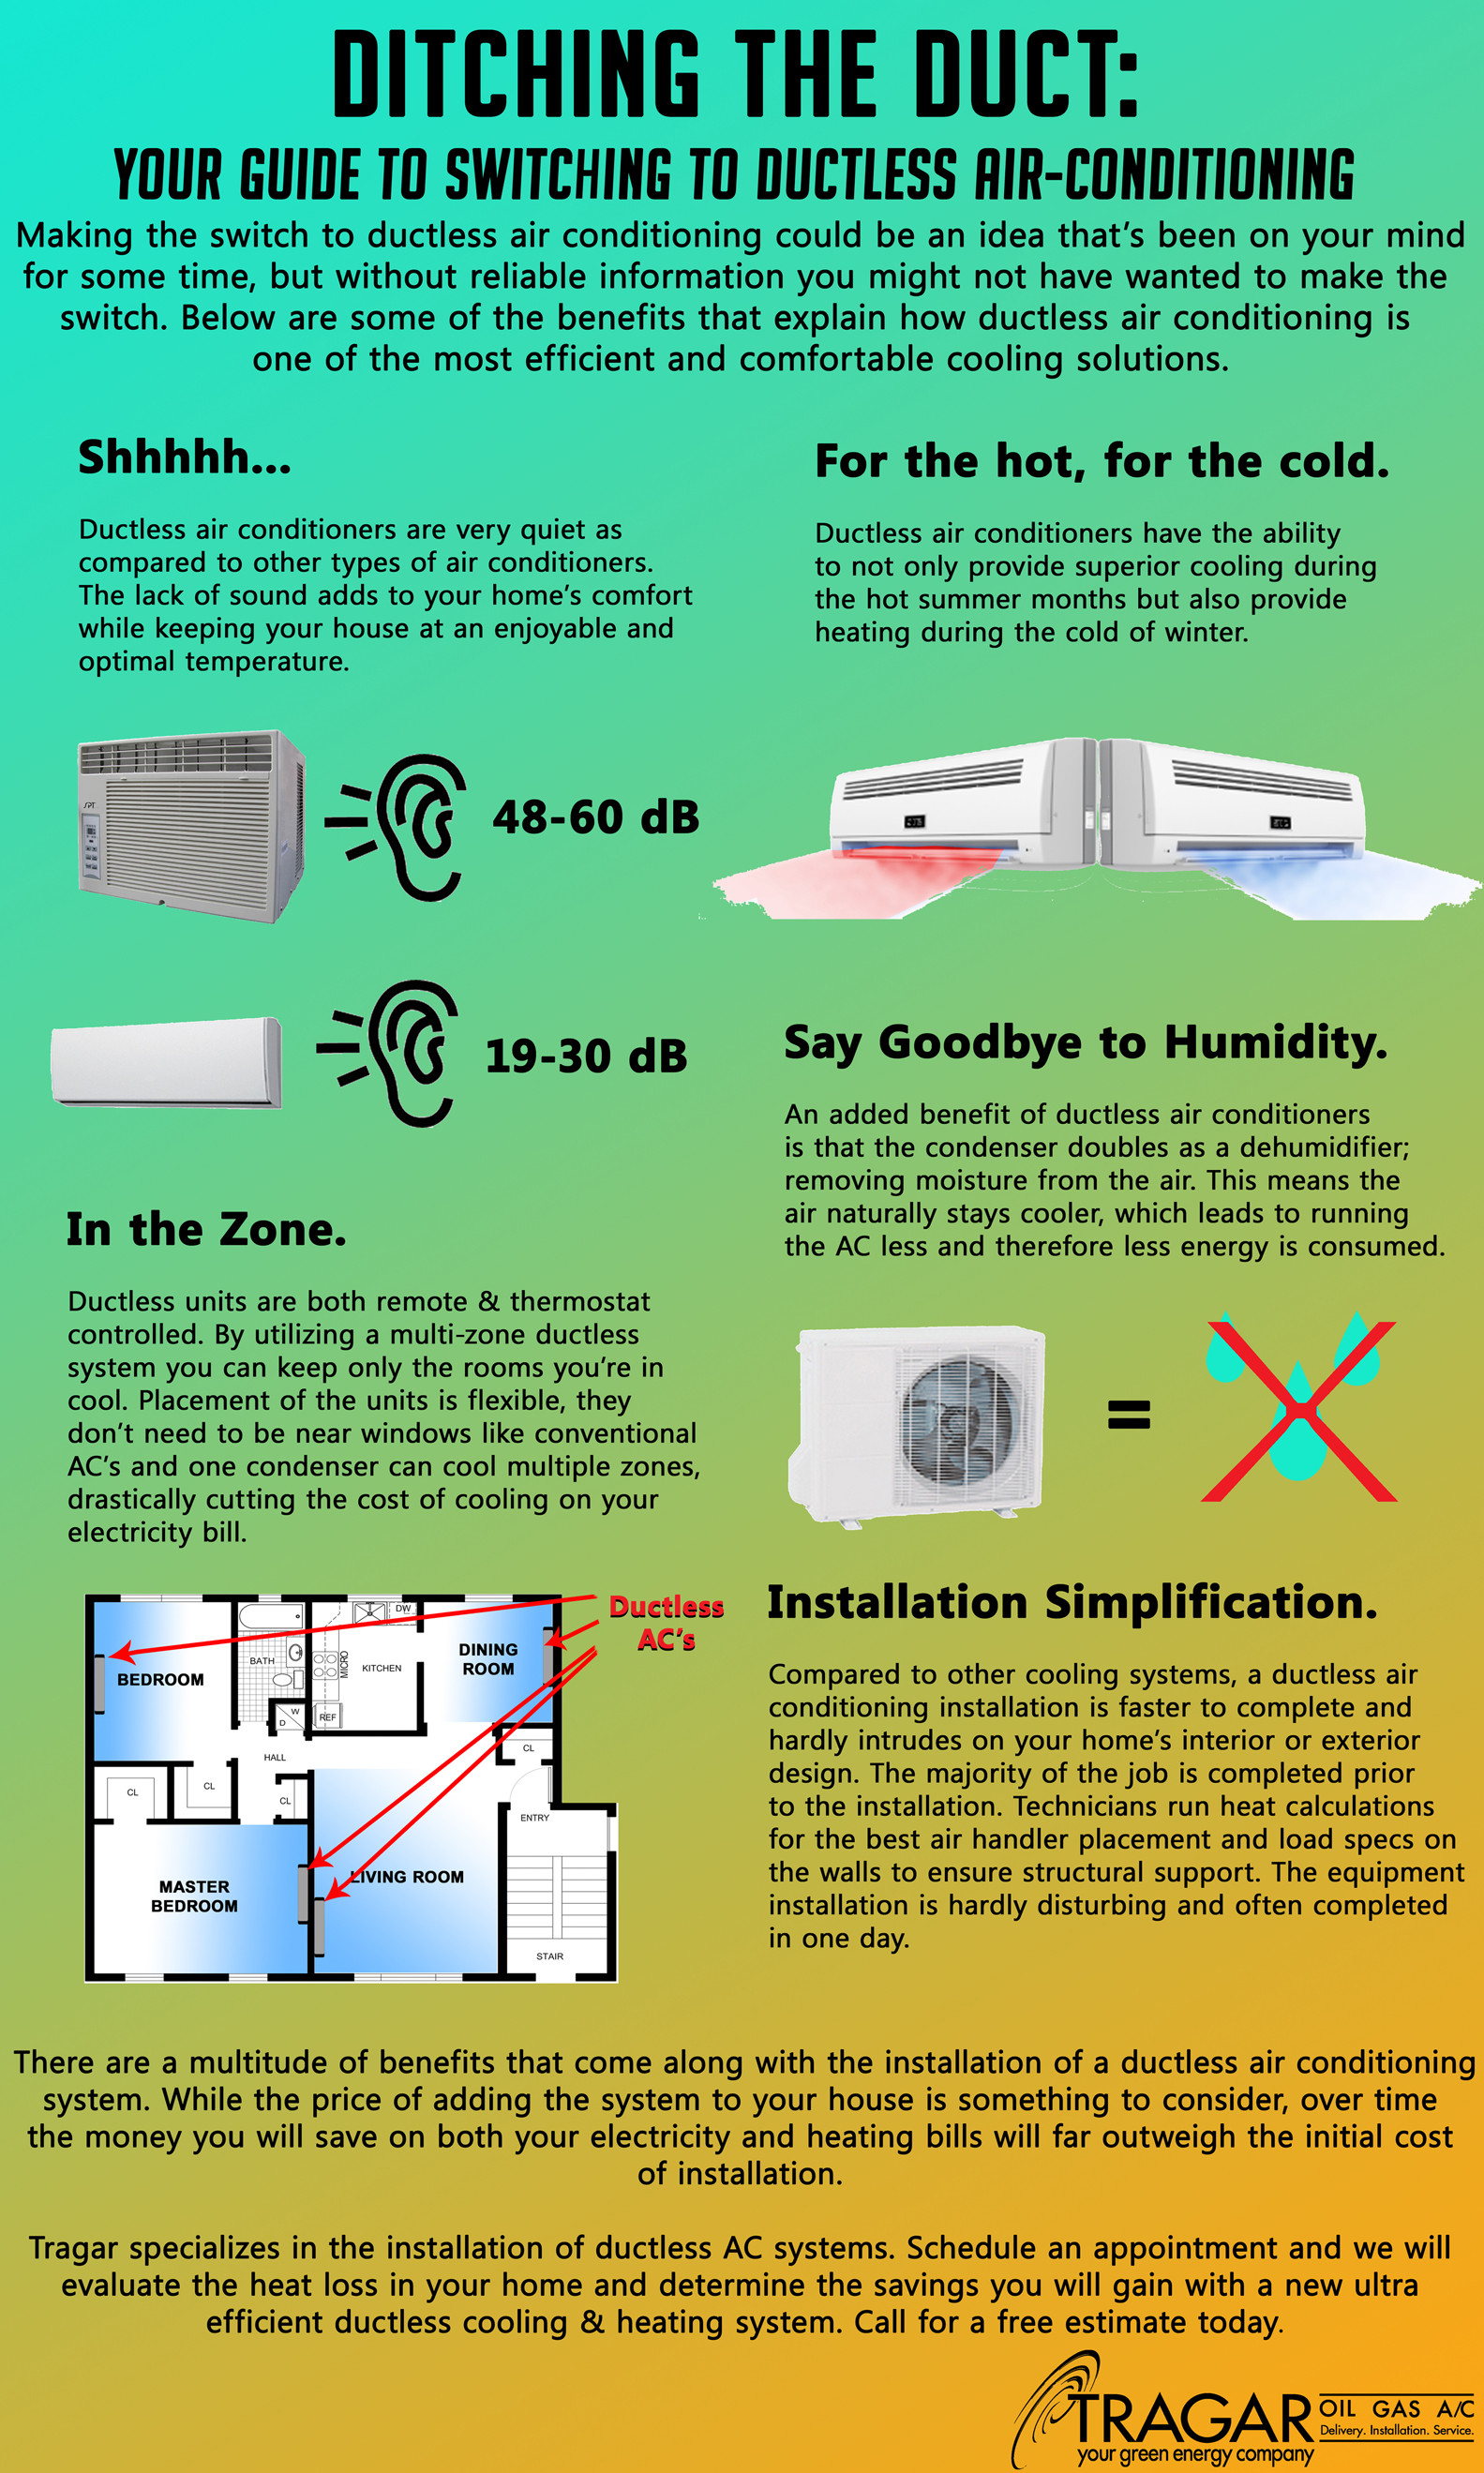 Long Island Ductless Air Conditioning Tragar Home Services Outside A C Condenser Unit Wiring Diagram Infographic